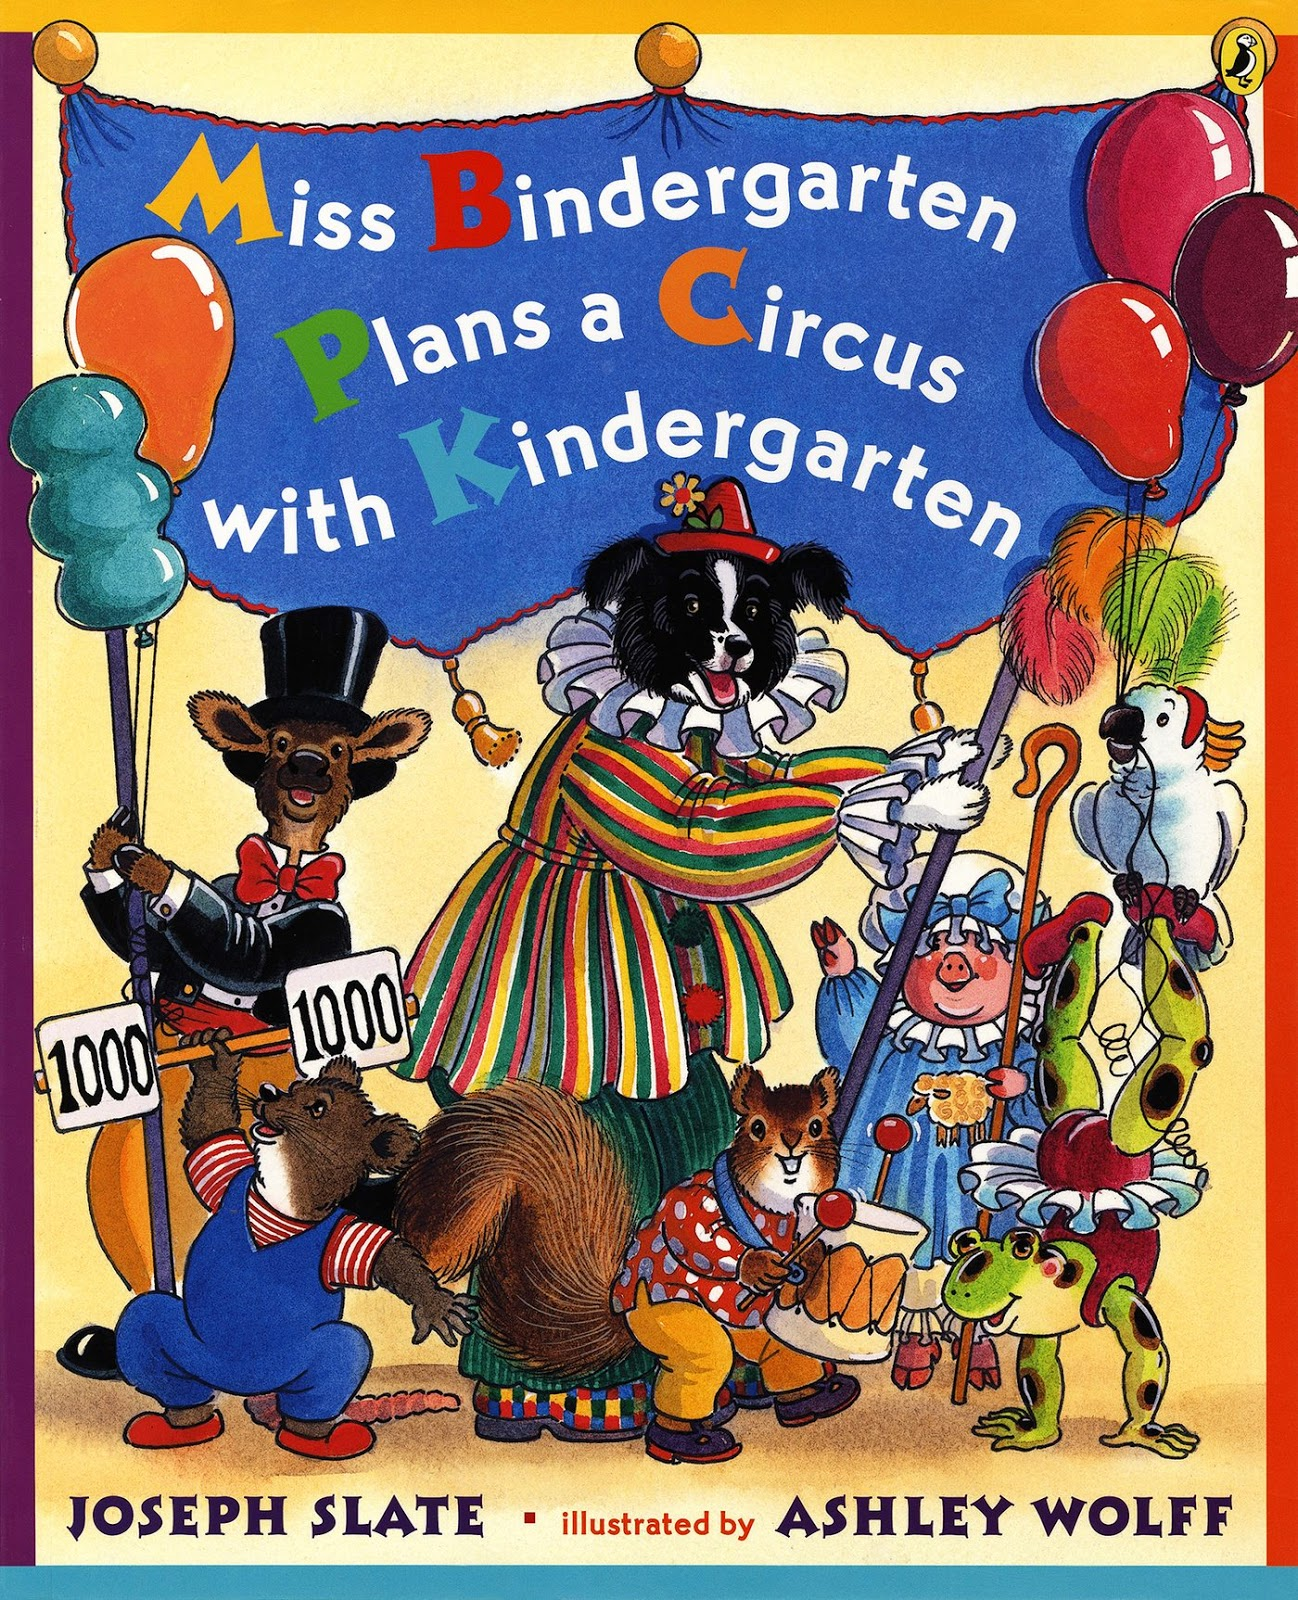 Miss Bindergarten Plans a Circus with Kindergarten, part of children's book review list about the circus